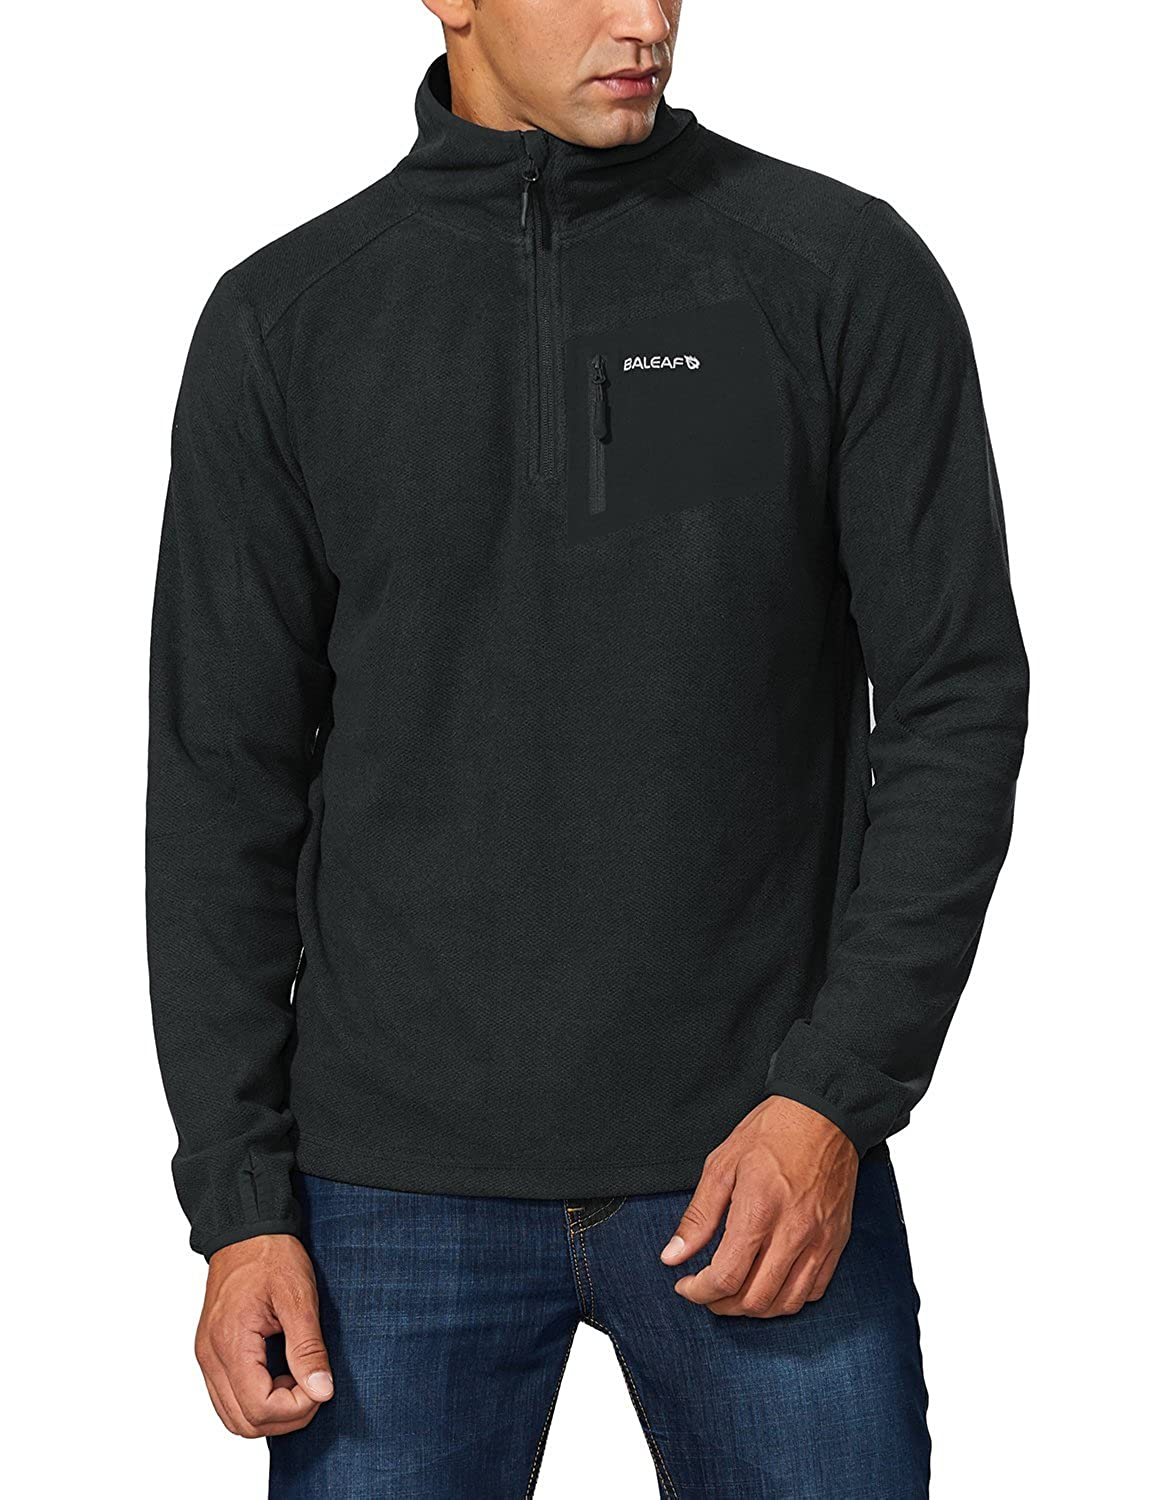 00a19386fe6 Quick-drying thermal fleece has a great warmth-to-weight ratio. Half zip  closure for ventilation